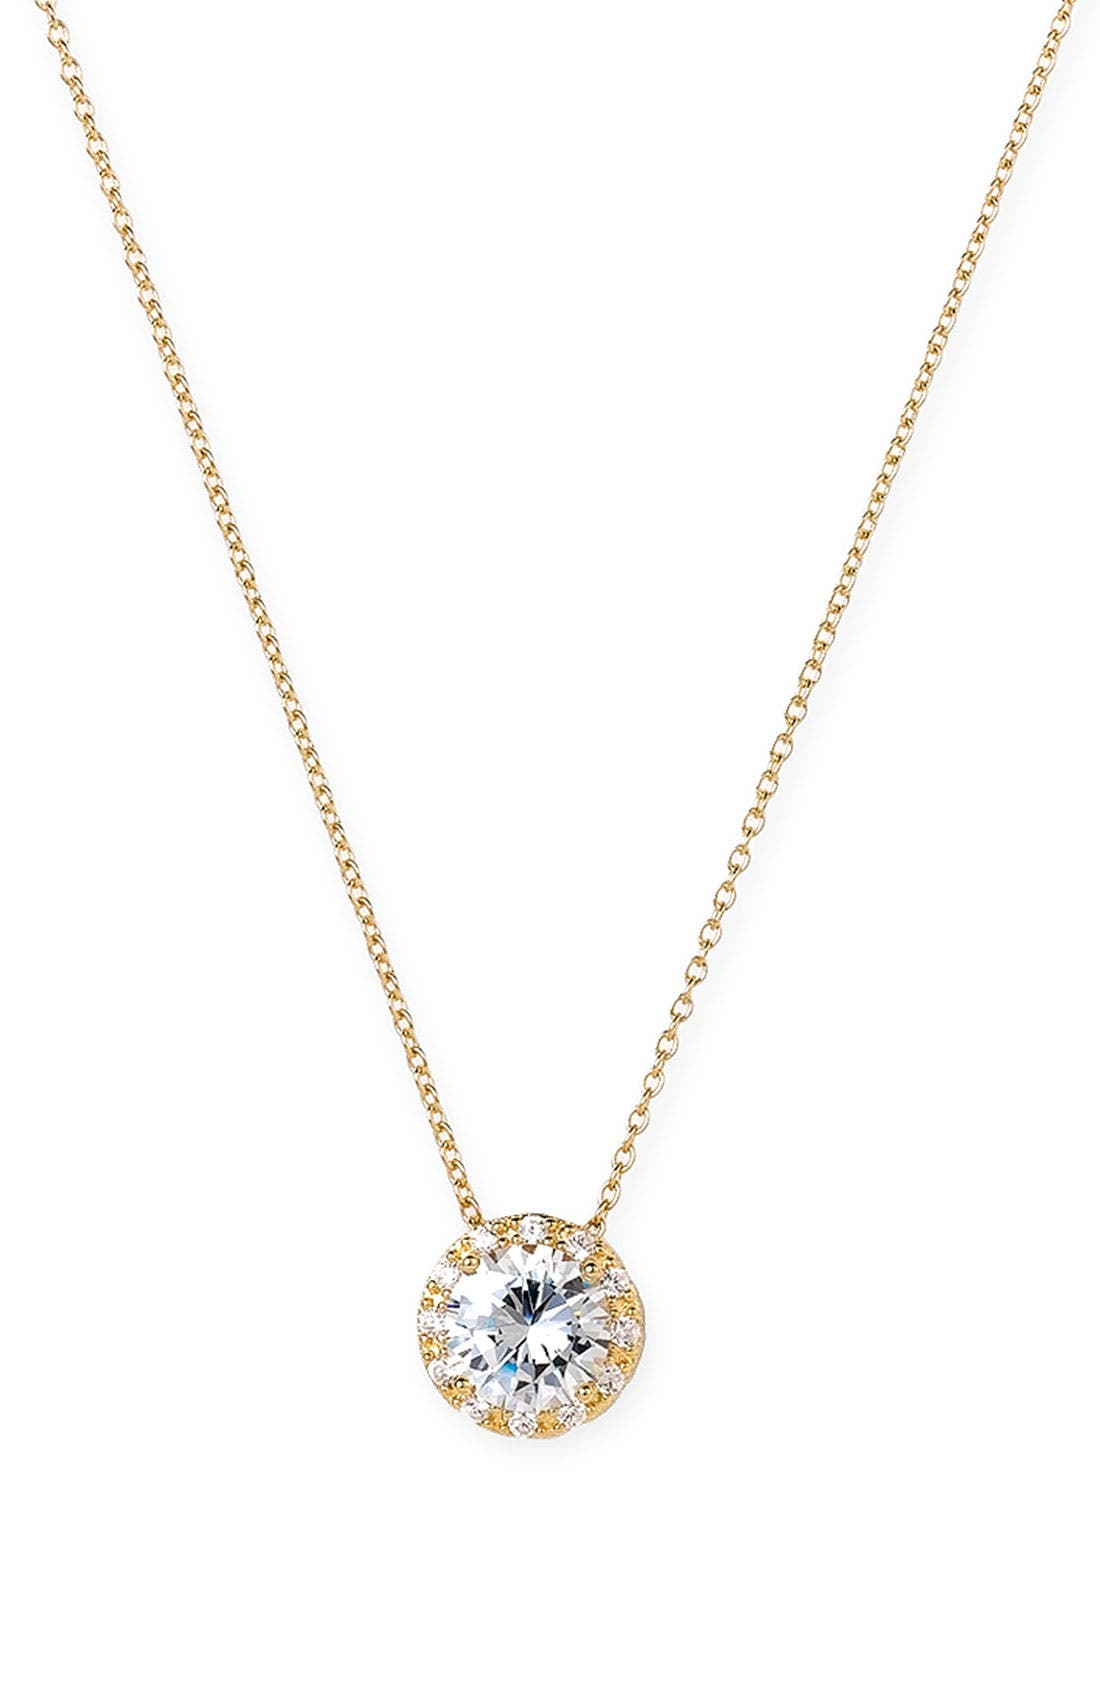 Main Image - Nordstrom Pavé Pendant Necklace